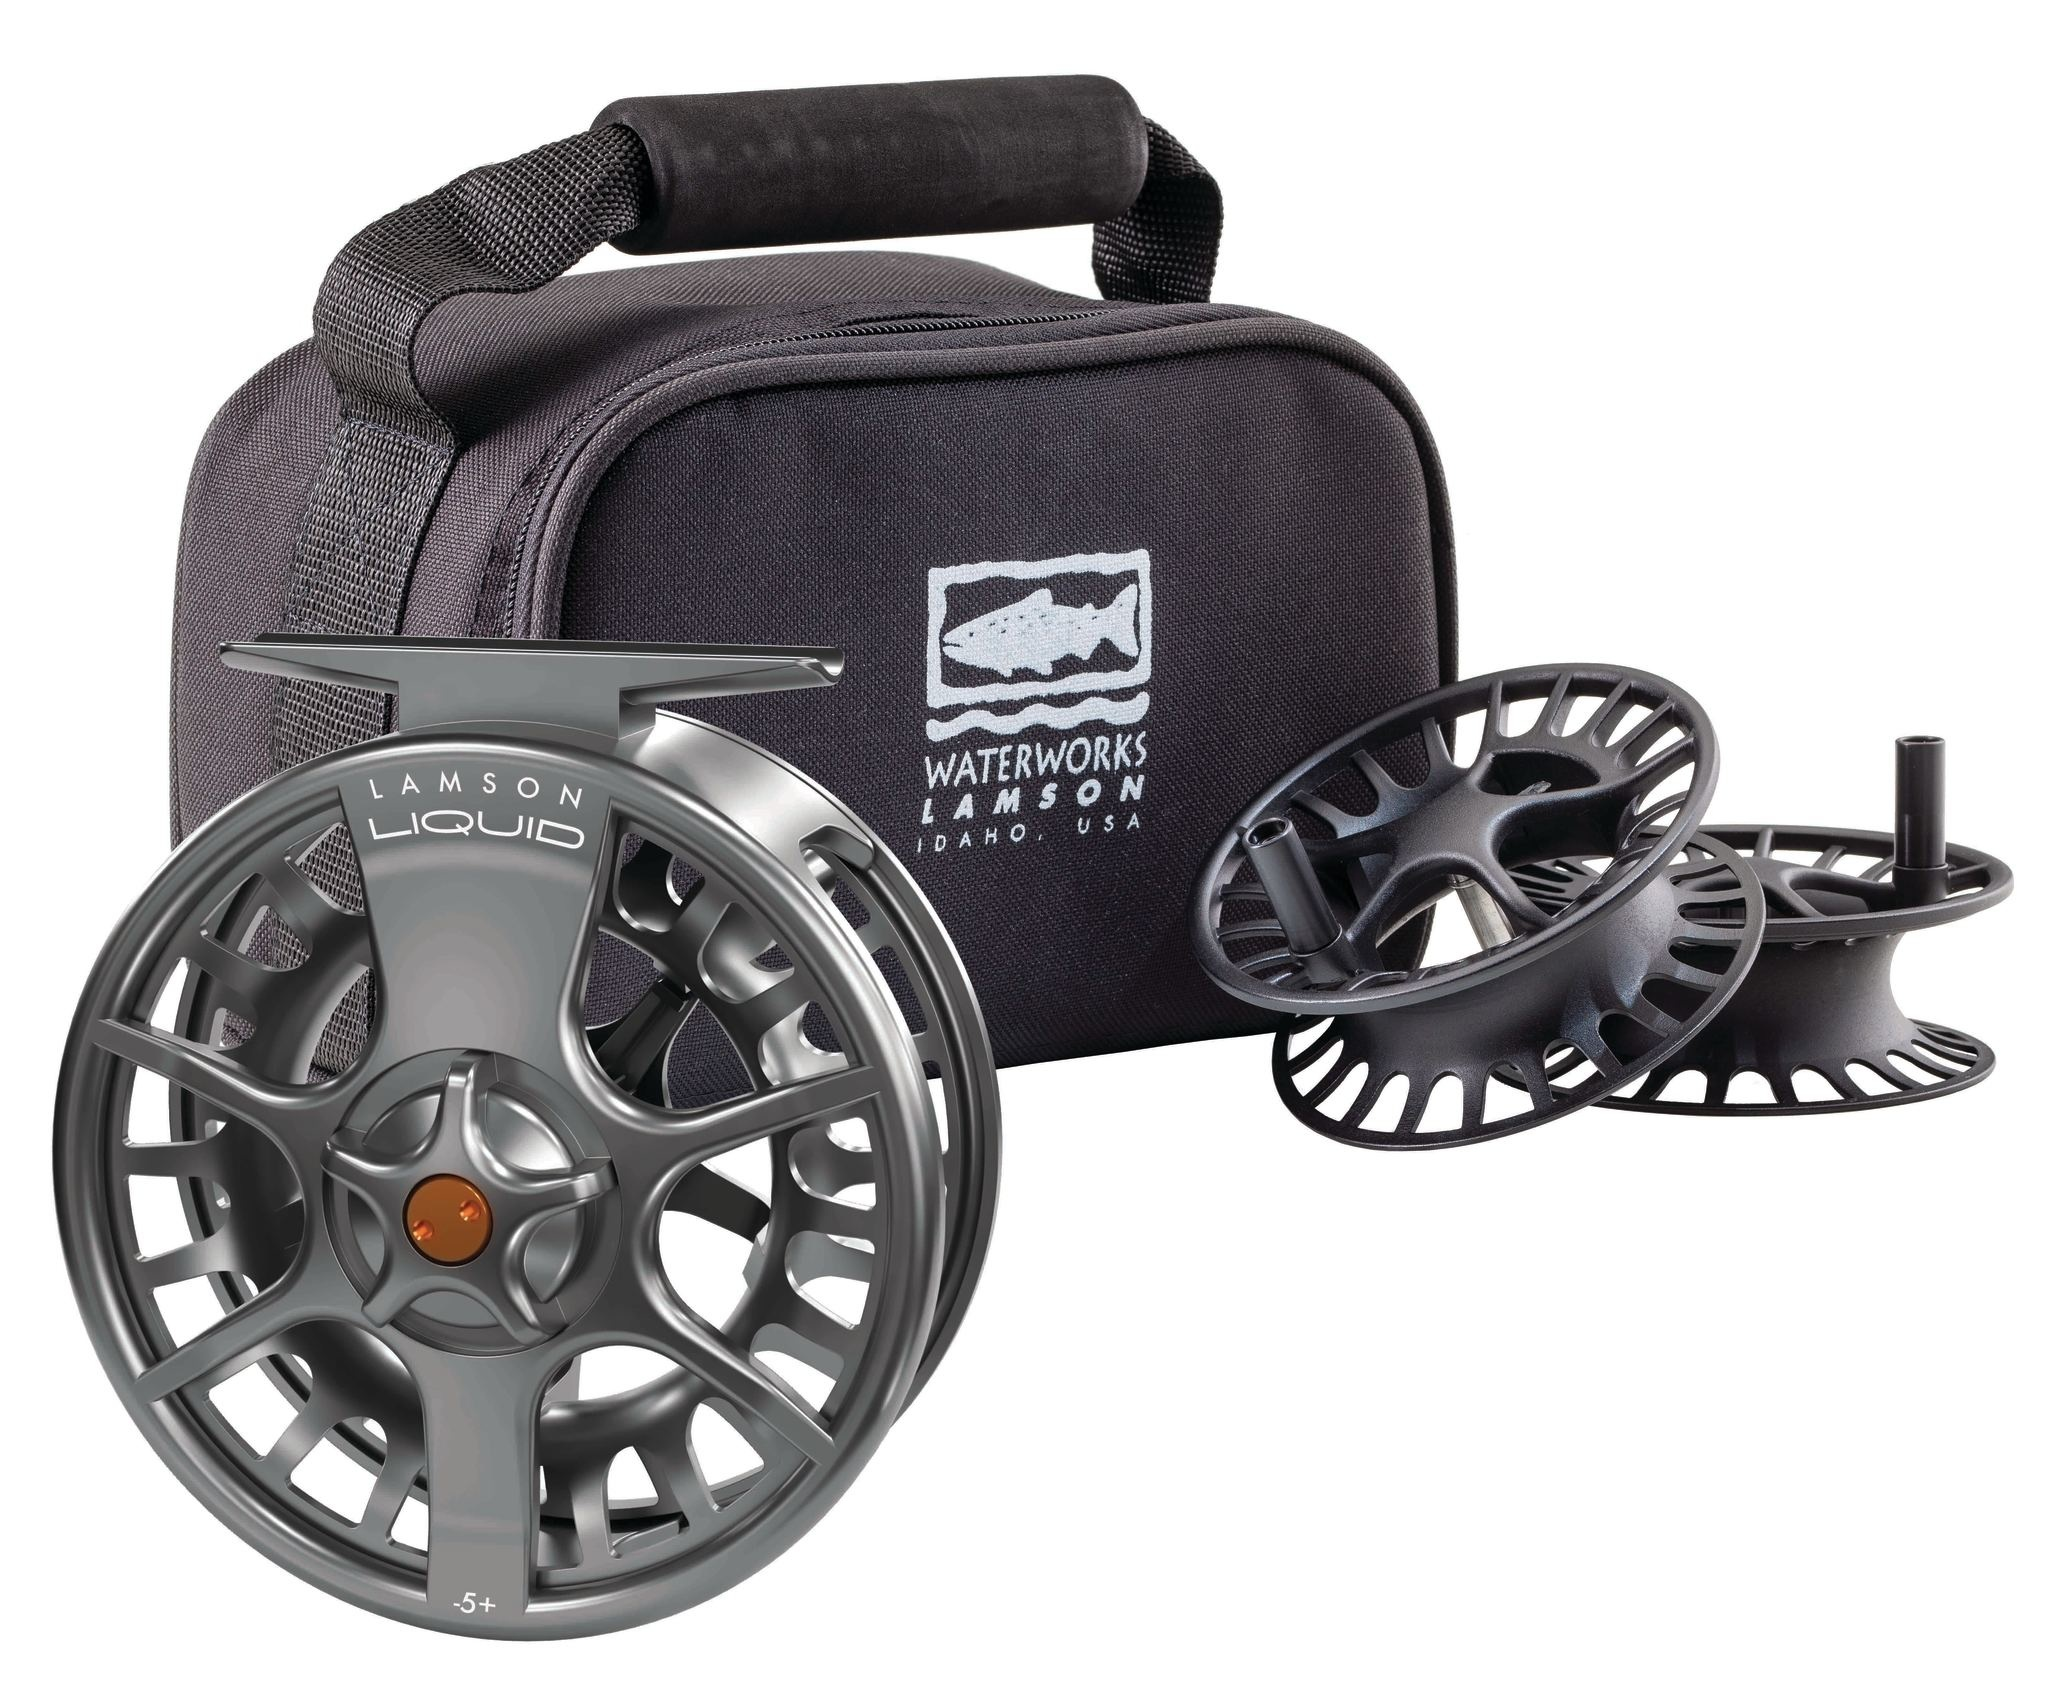 Waterworks Lamson Lamson Liquid 3-Pack